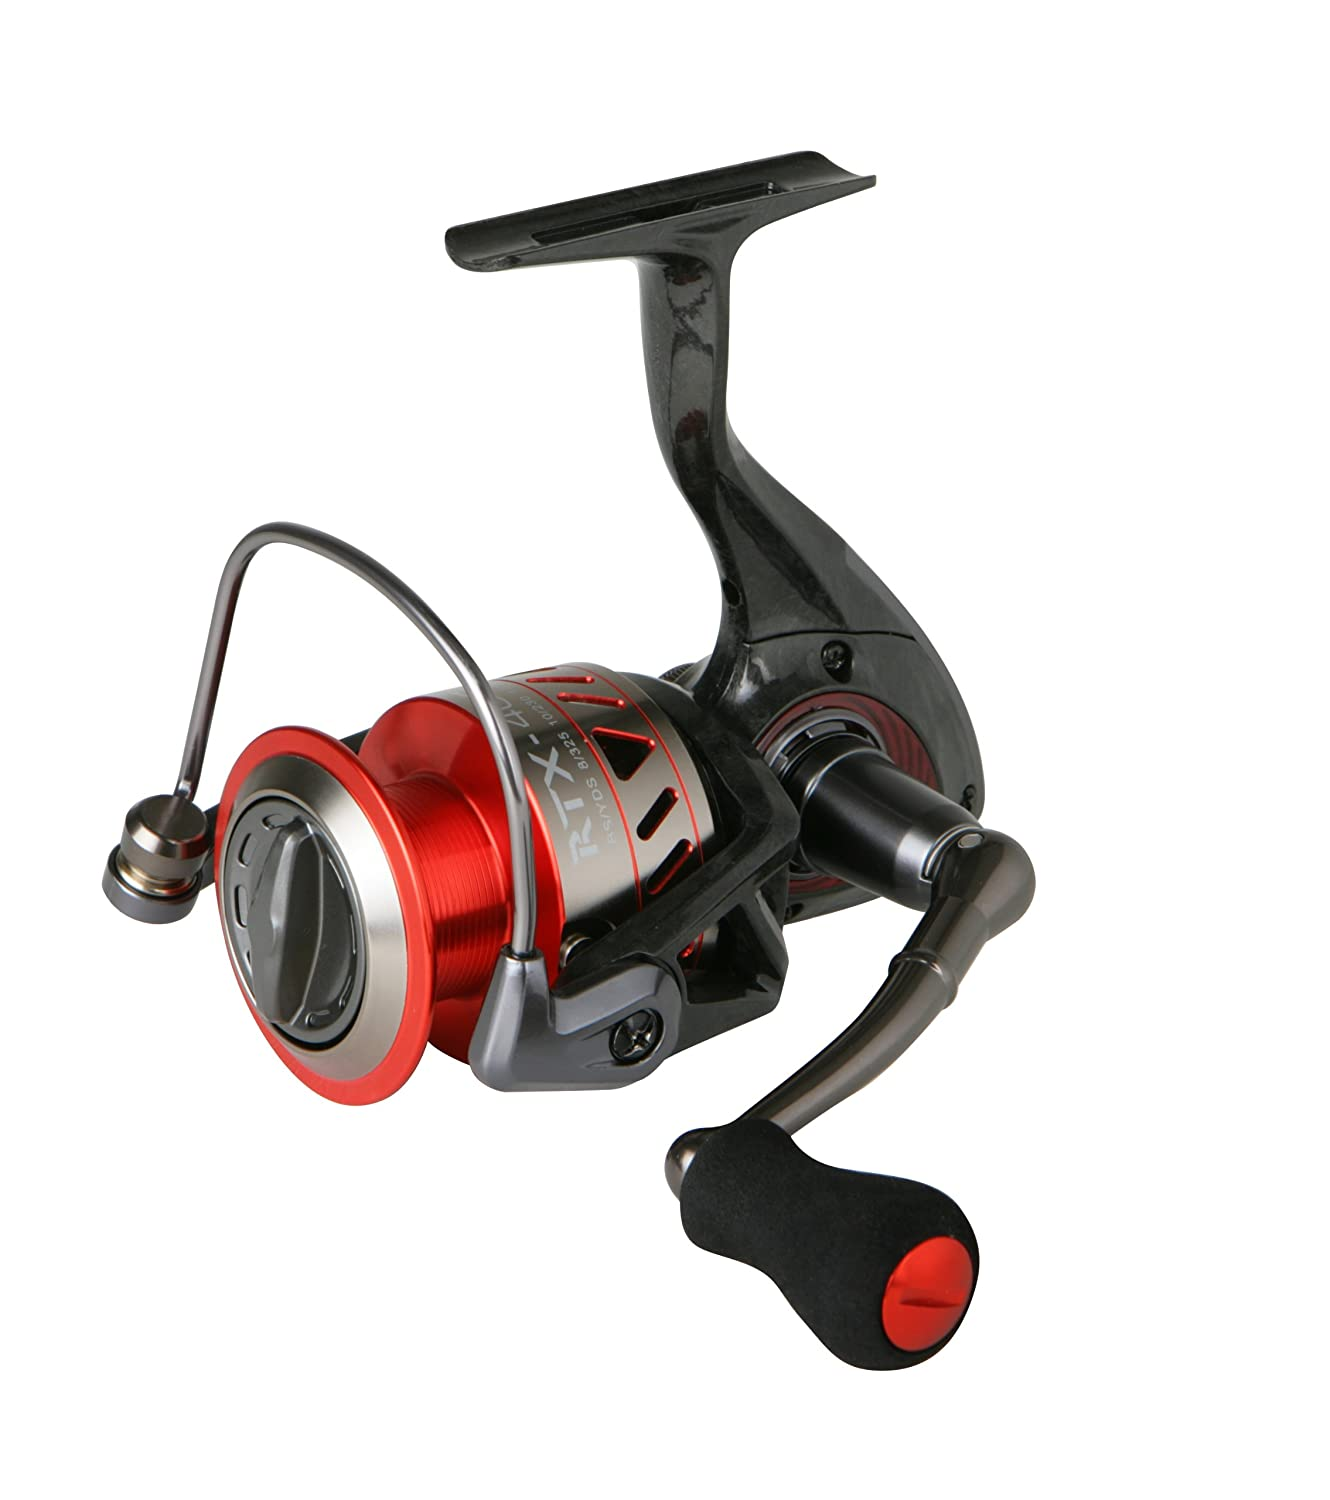 Okuma Fishing Tackle RTX Extremely Lightweight High Speed Spinning Reel